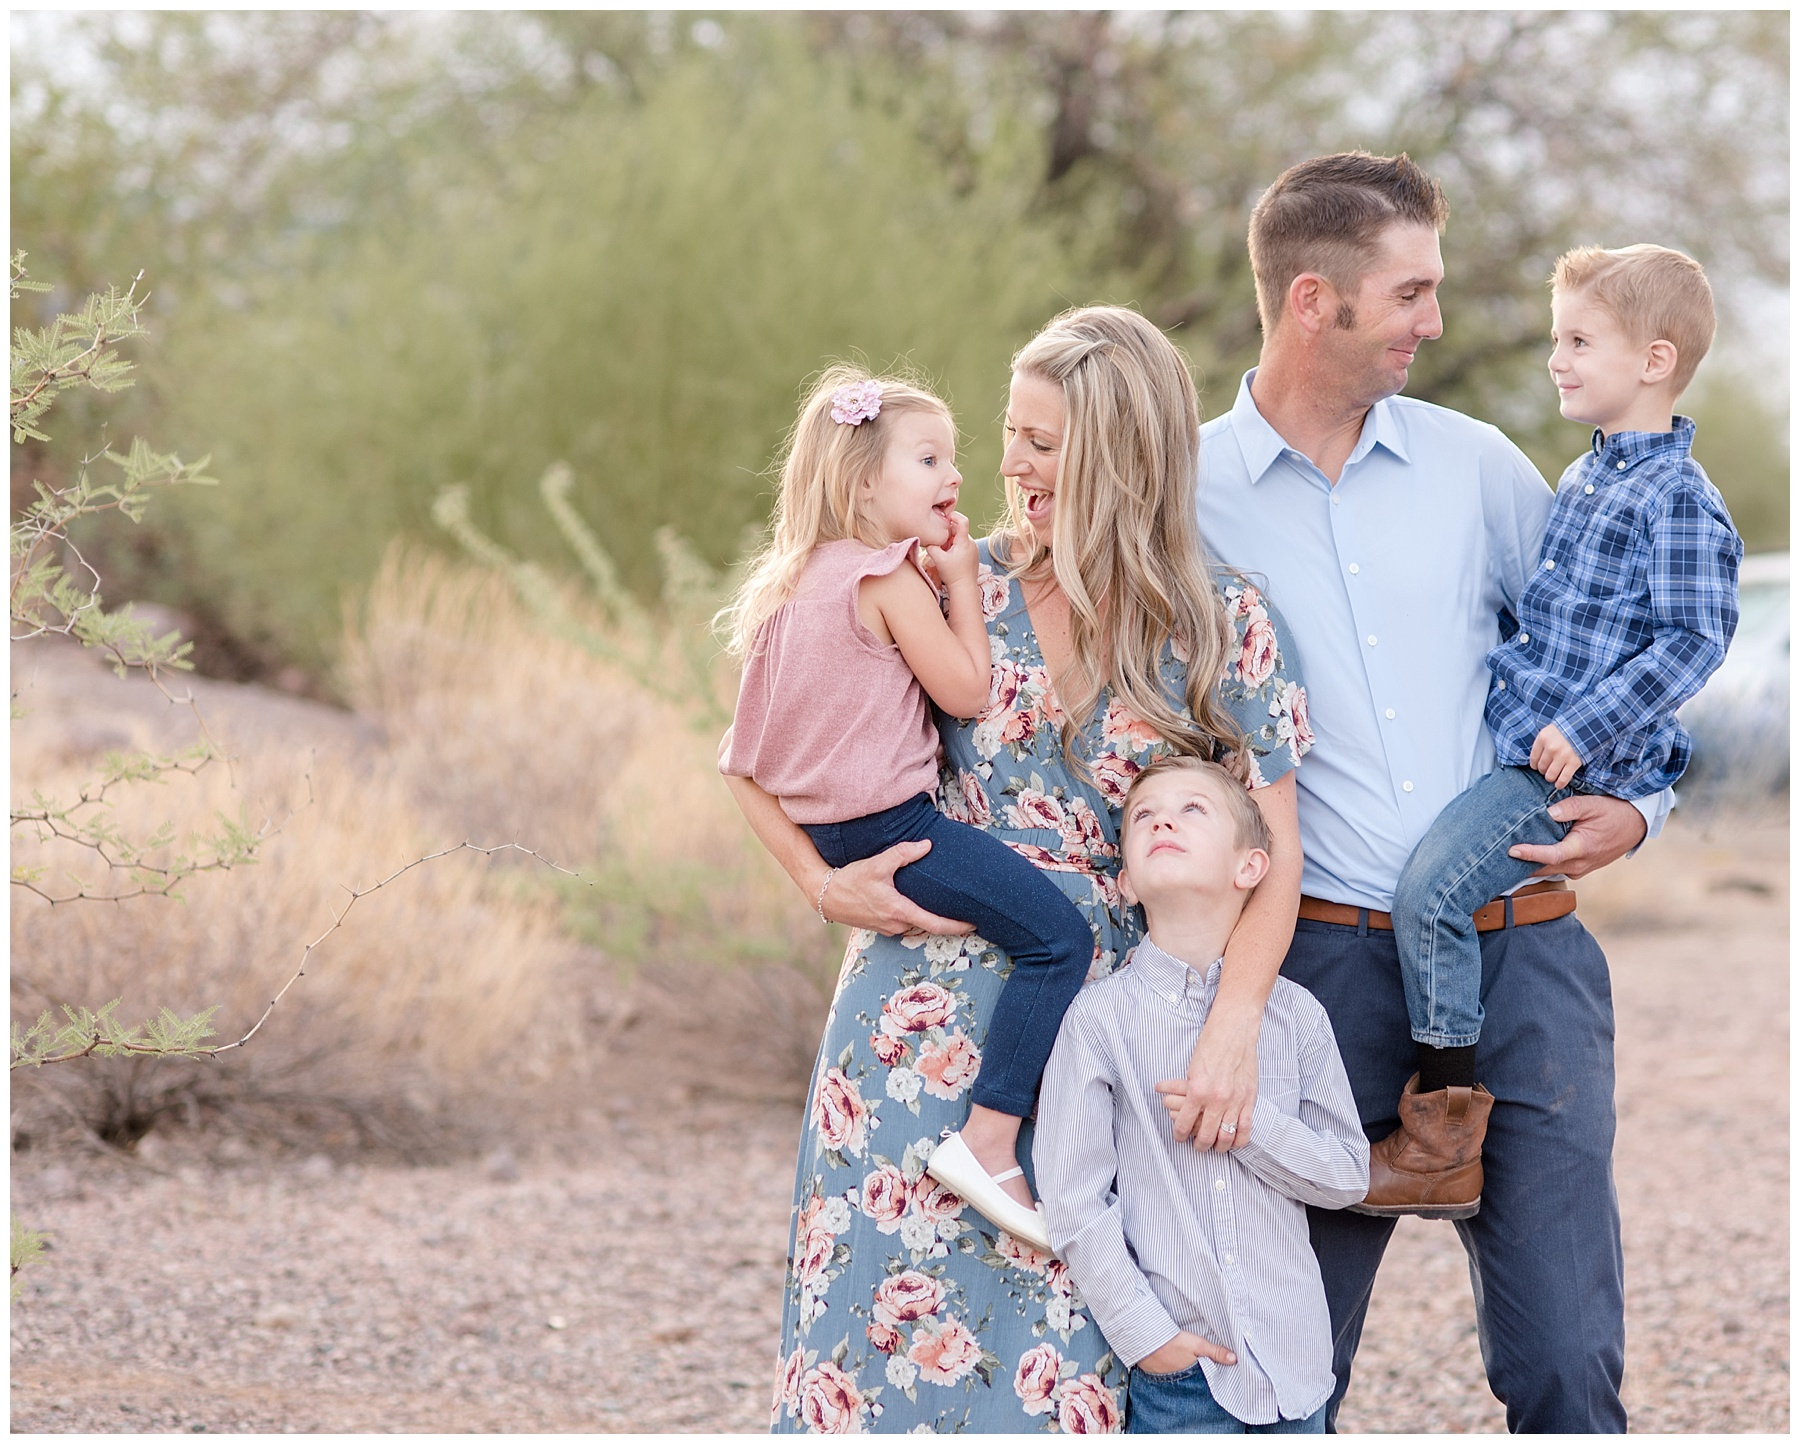 Wear to what for family pictures advise dress for spring in 2019